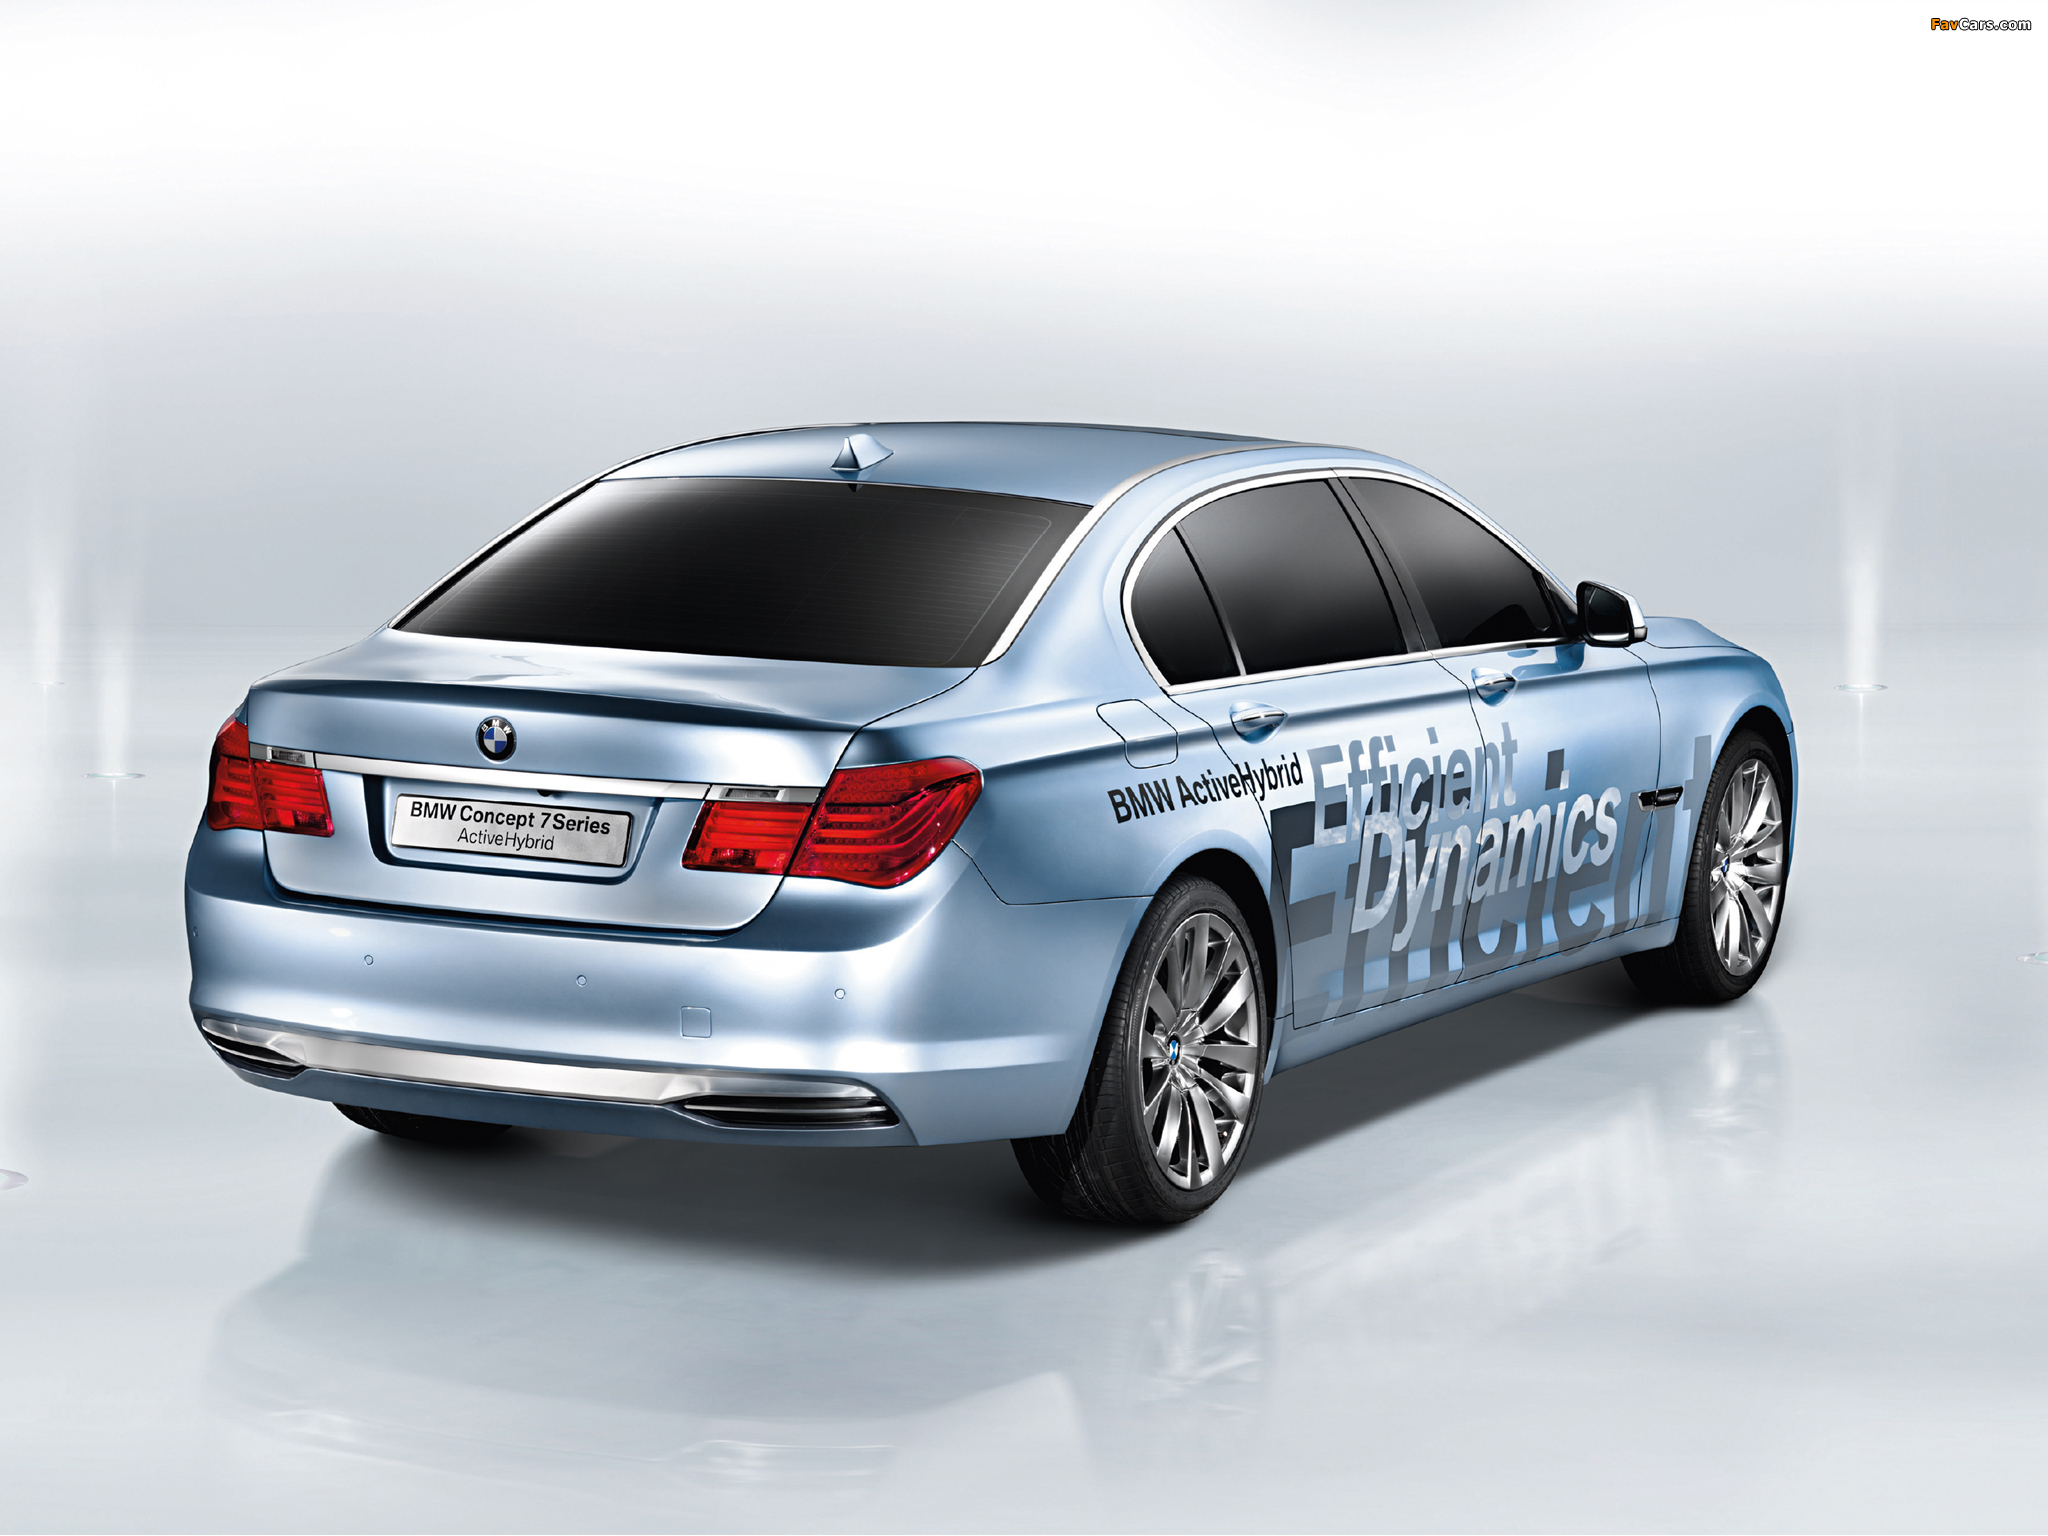 Bmw 7 series rear angle  № 3044723  скачать